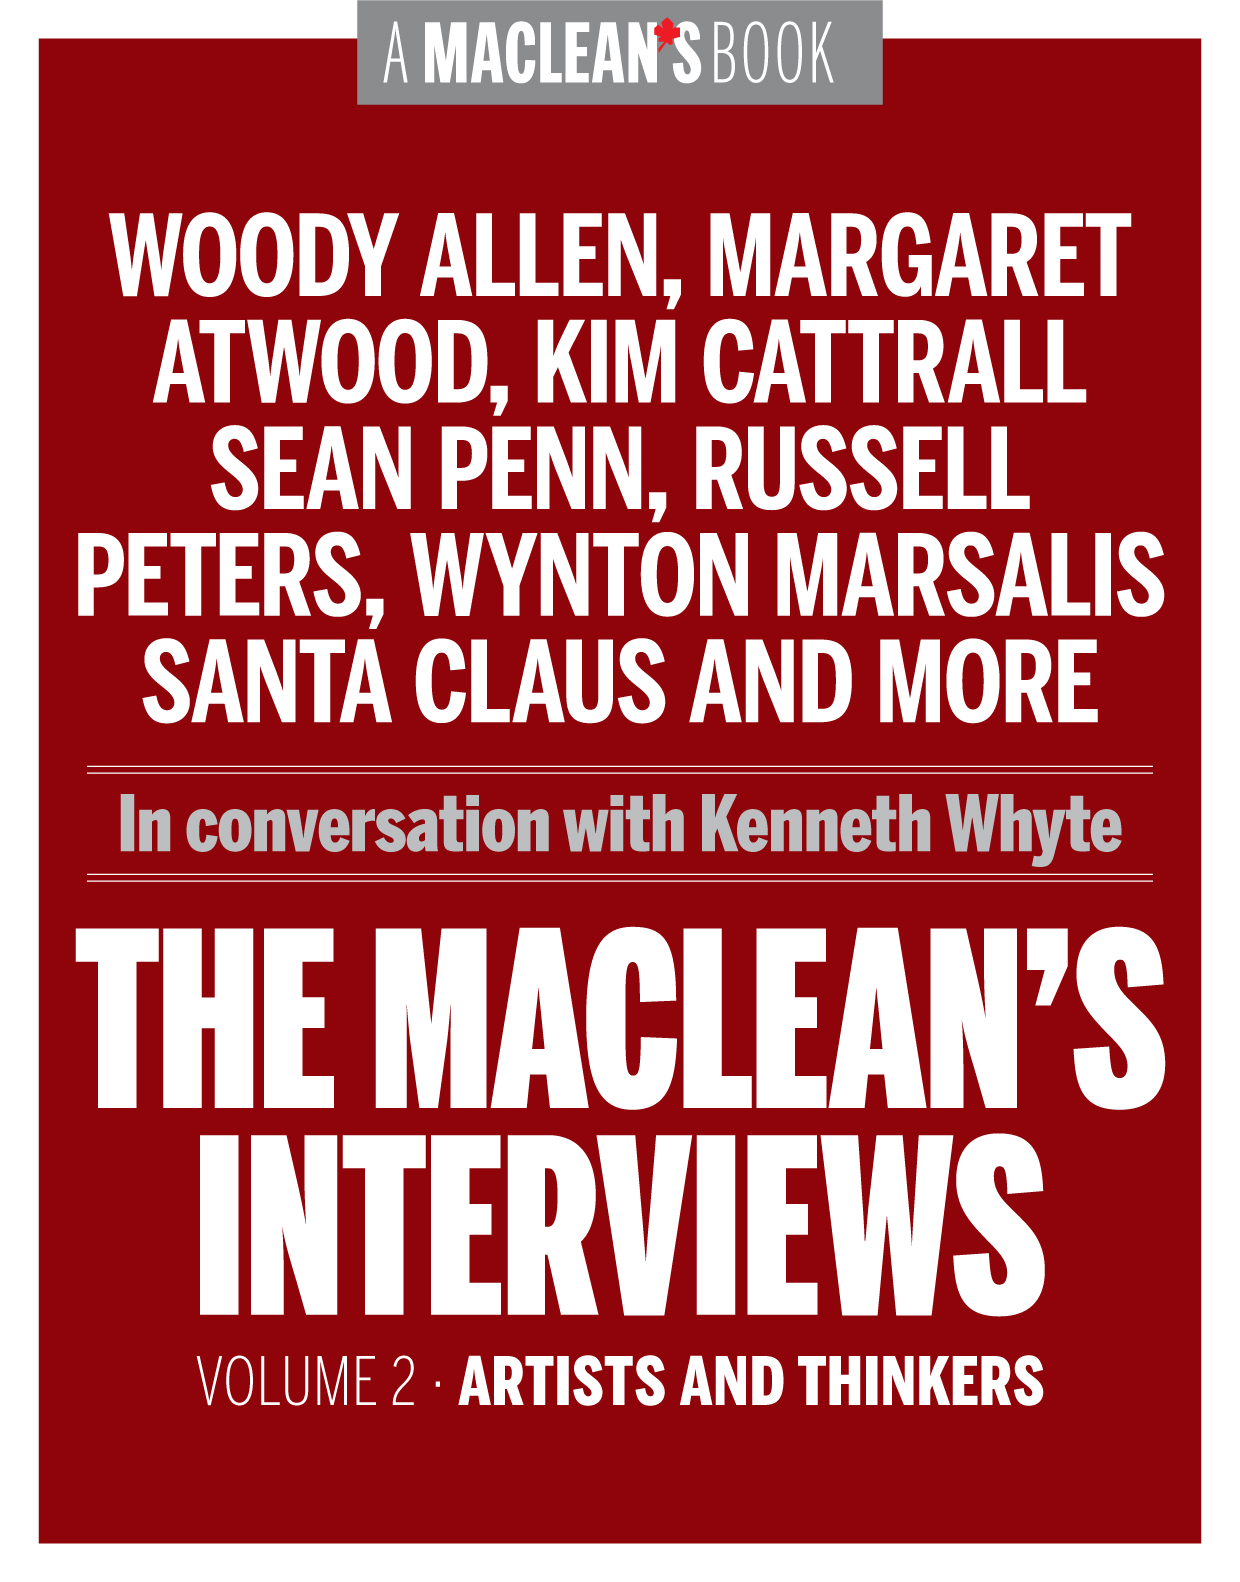 The Macleans Interviews, Volume 2: Artists and Thinkers